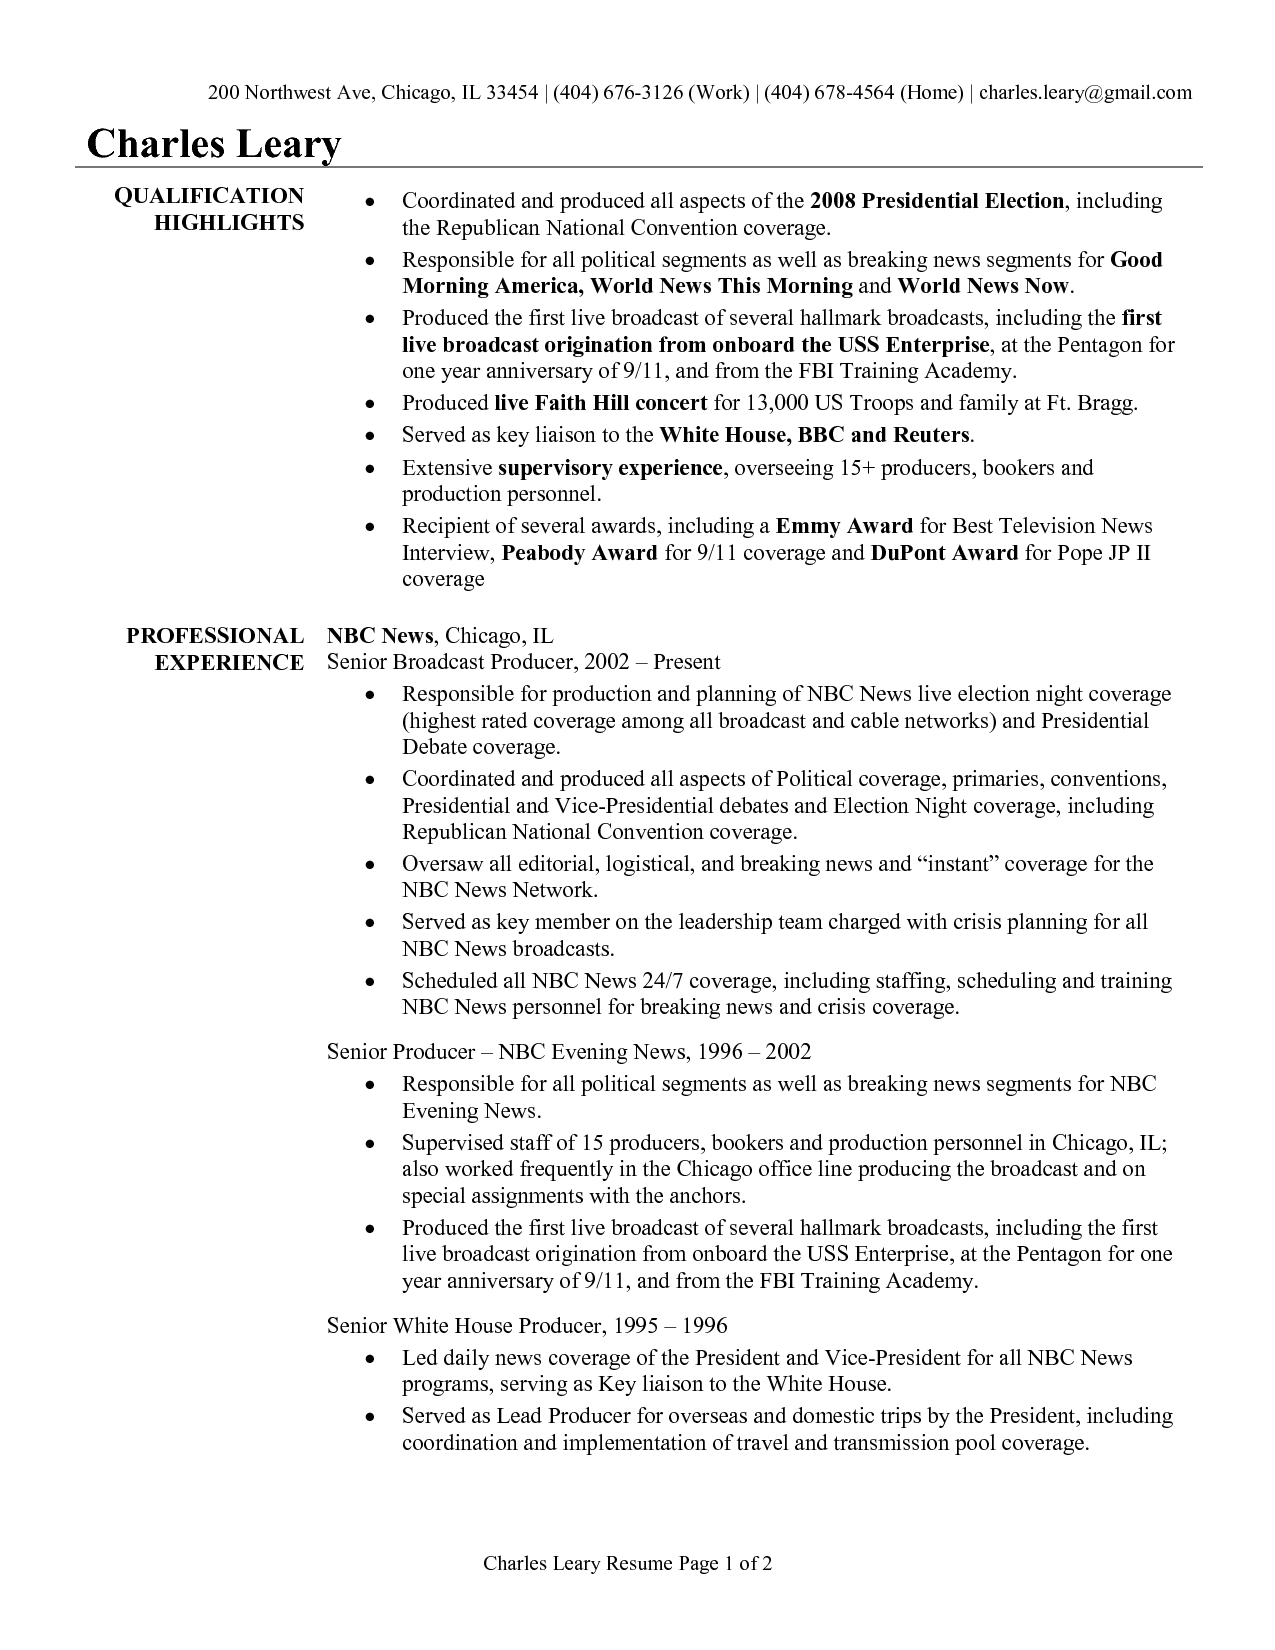 Insurance Producer Resume Cover Letter For Underwriter  Home